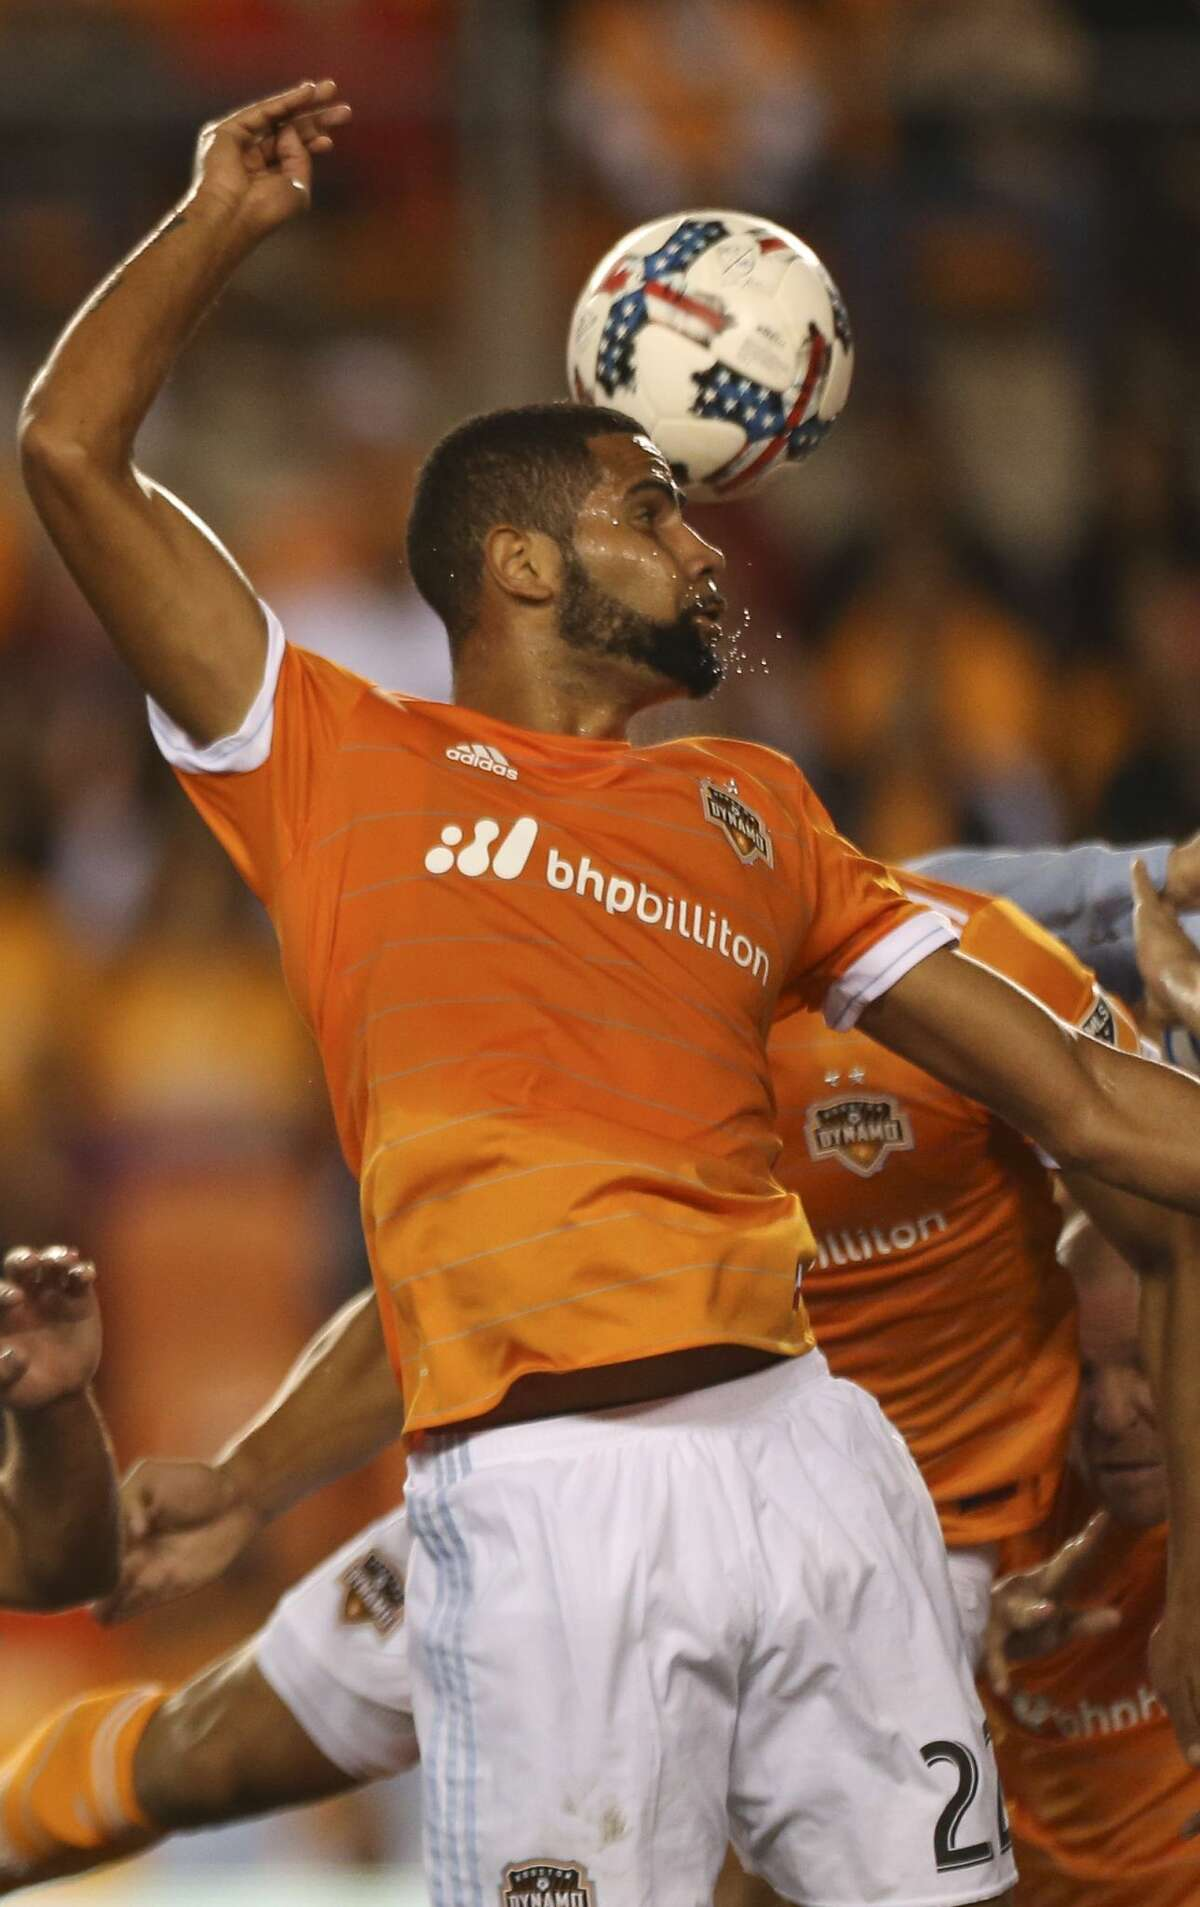 Houston Dynamo defender Leonardo (22) attempts a header during the first half of the first-round playoff MLS match against the Sporting Kansas City at BBVA Compass Stadium Thursday, Oct. 26, 2017, in Houston. ( Yi-Chin Lee / Houston Chronicle )